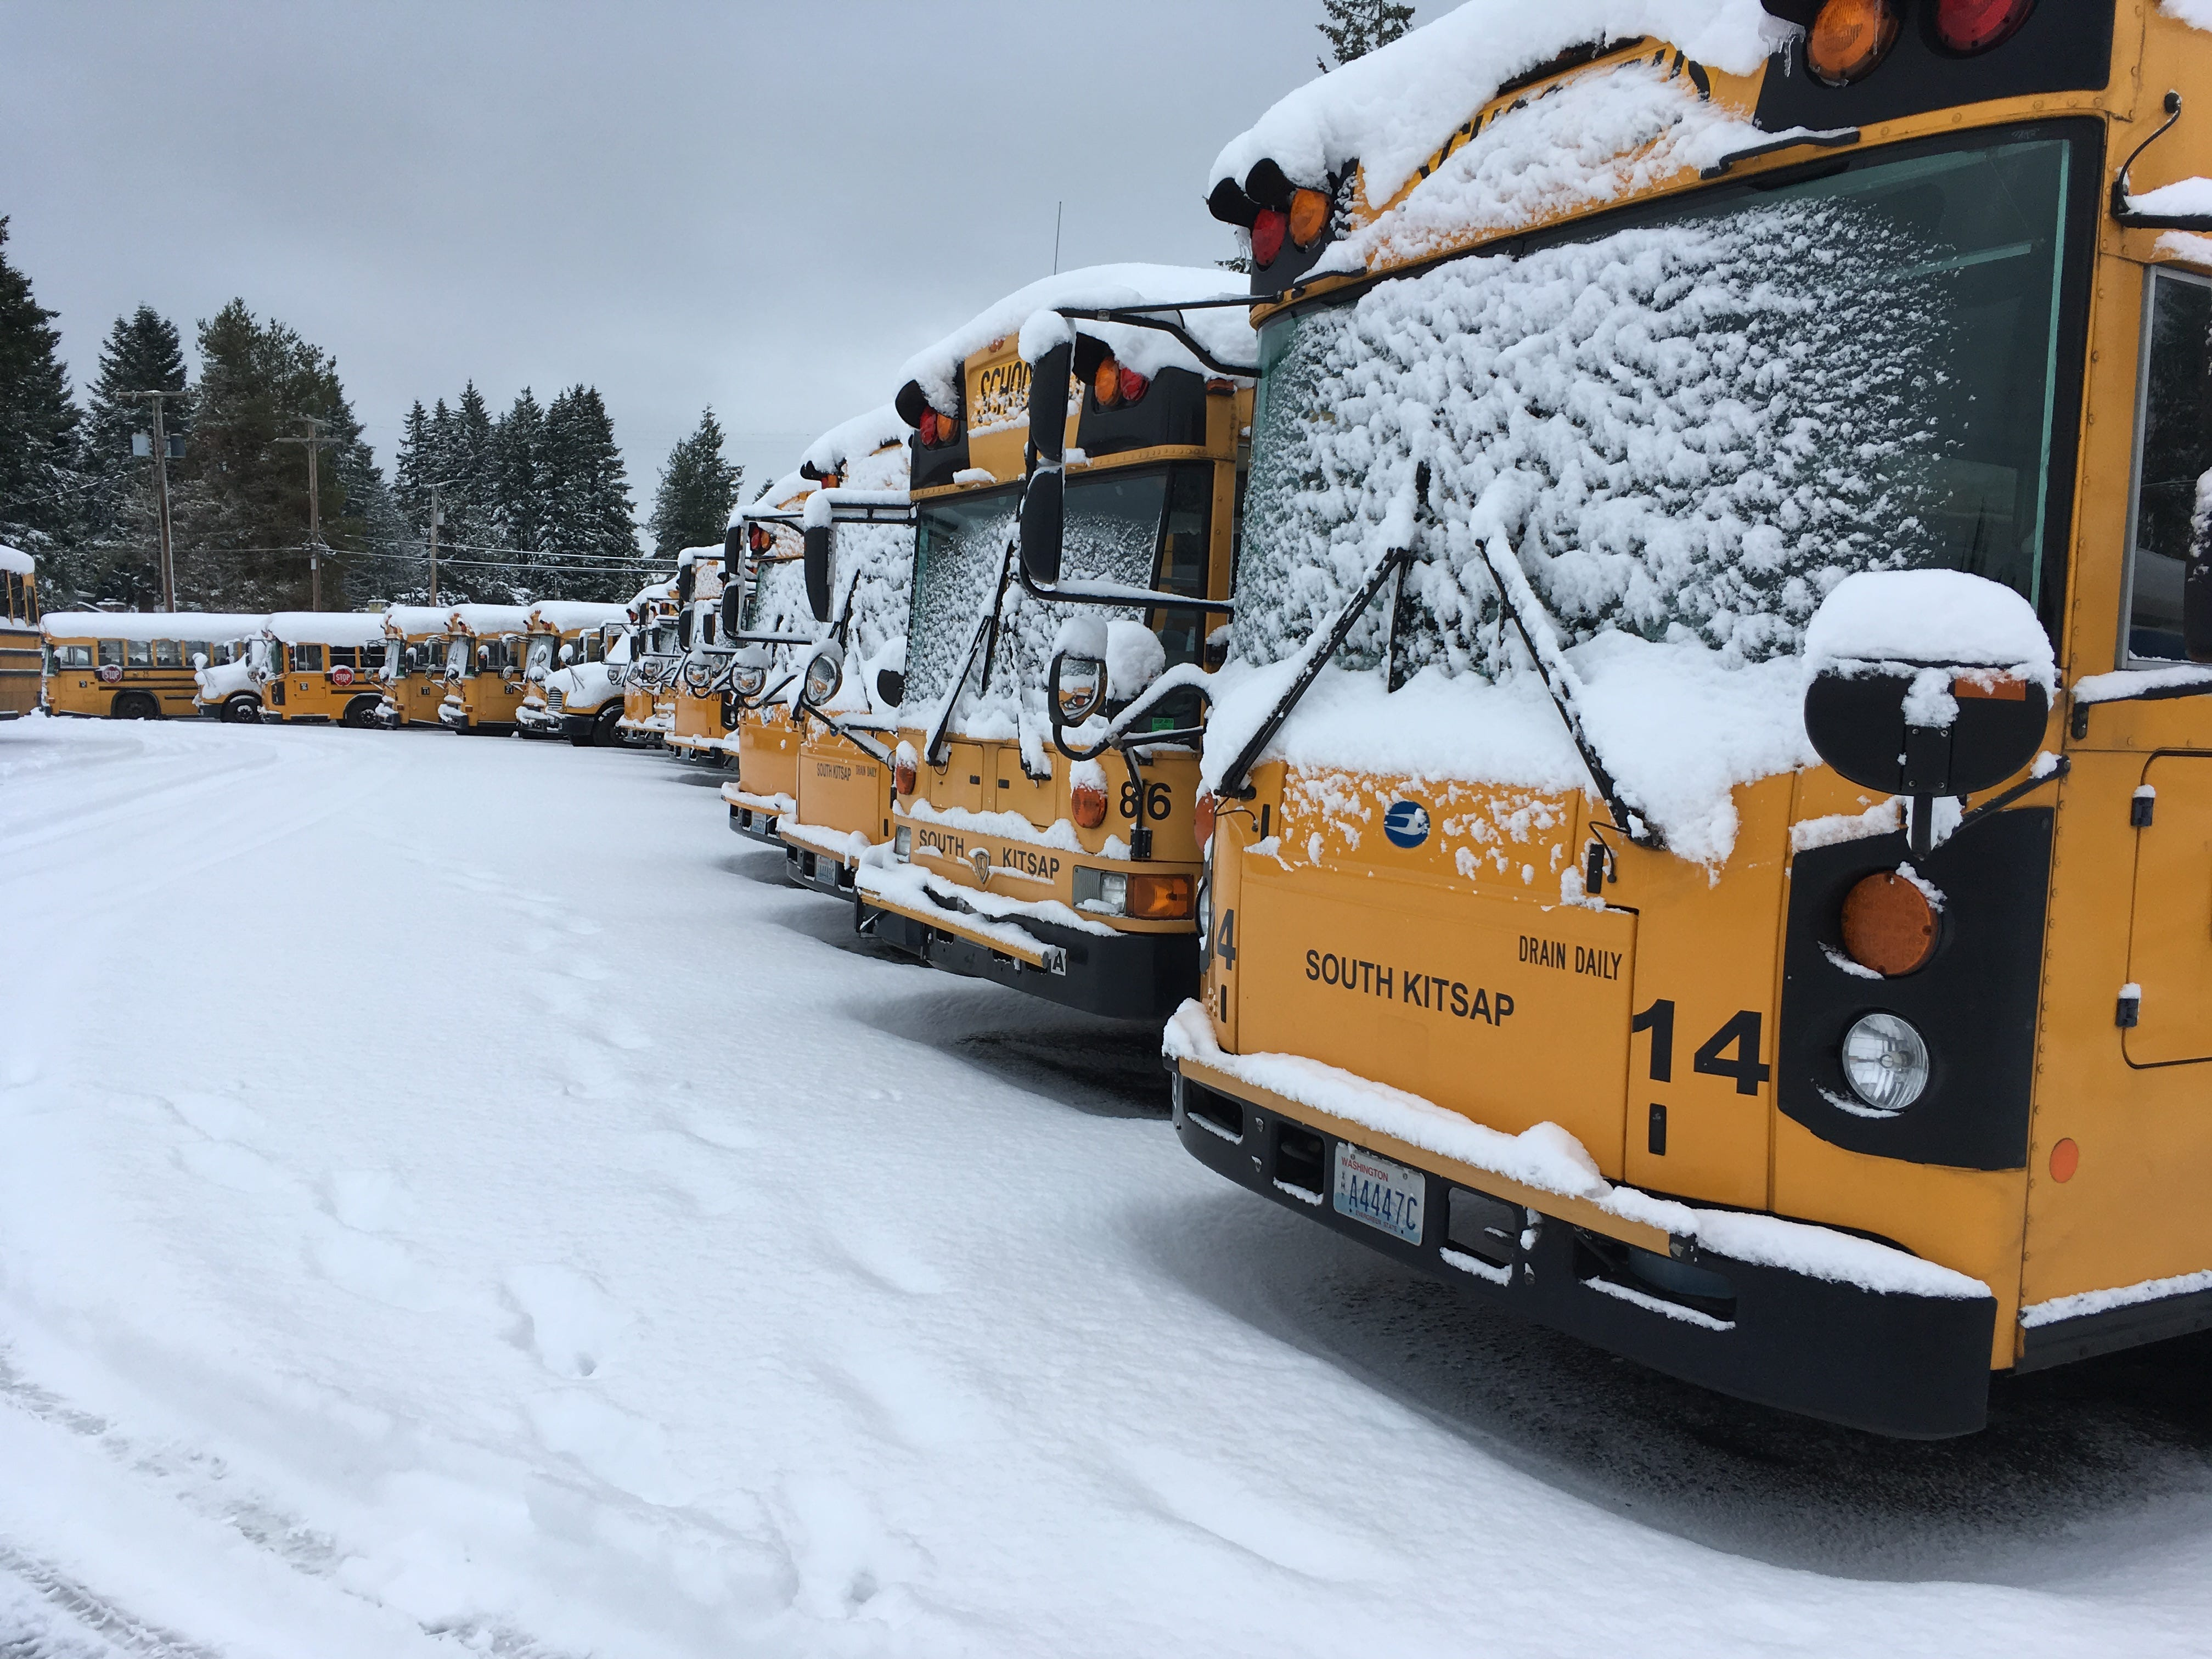 Buses in South Kitsap School District's bus barn stood idle on Monday, Feb. 11, 2019, following back to back snow storms over the weekend. All schools in Kitsap and North Mason counties were cancelled.